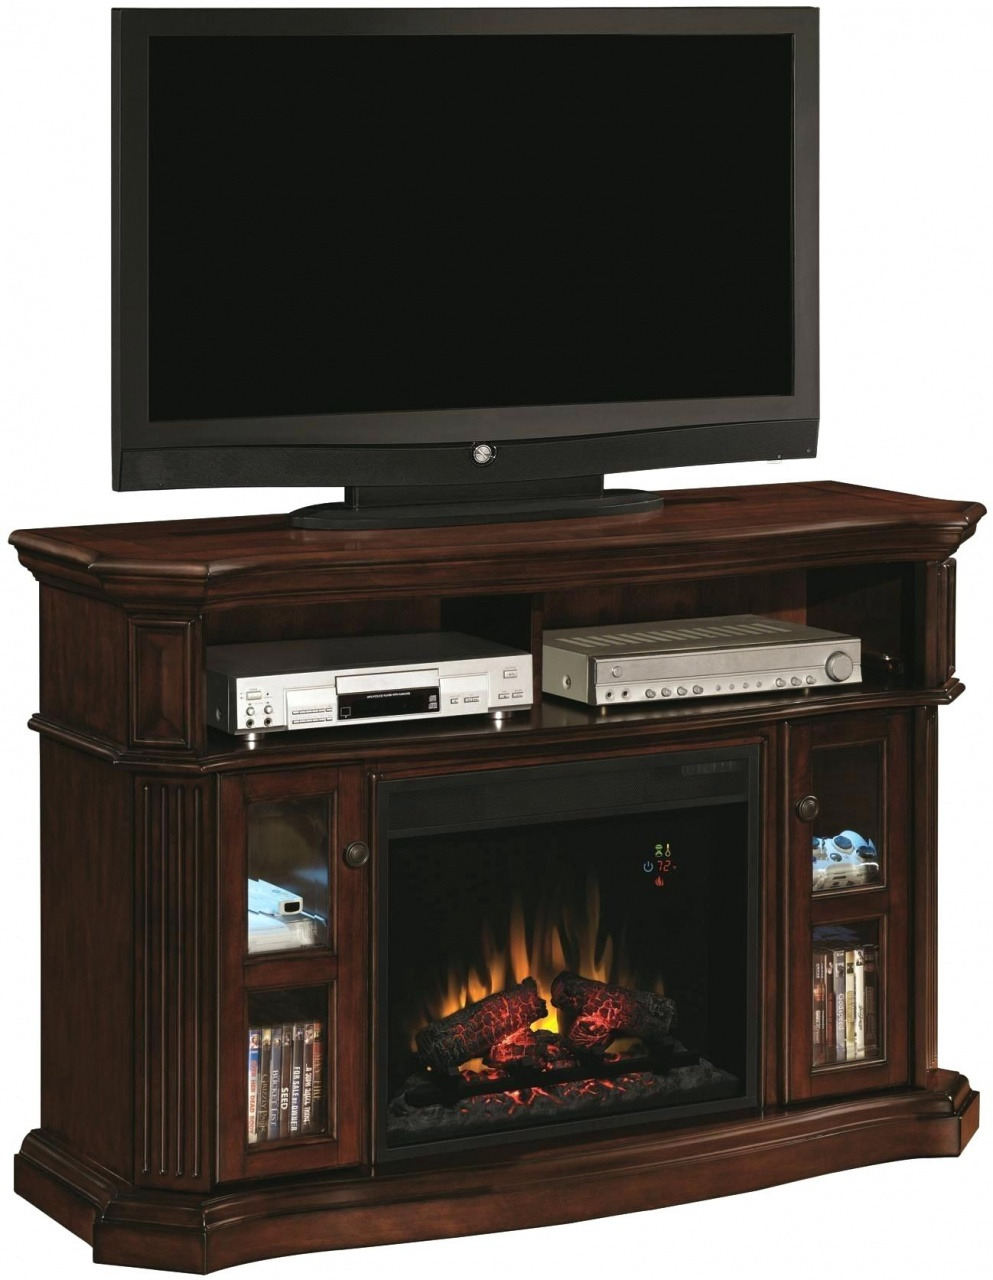 oak electric fireplace entertainment center real flame fresno electric fireplace black g1200e b